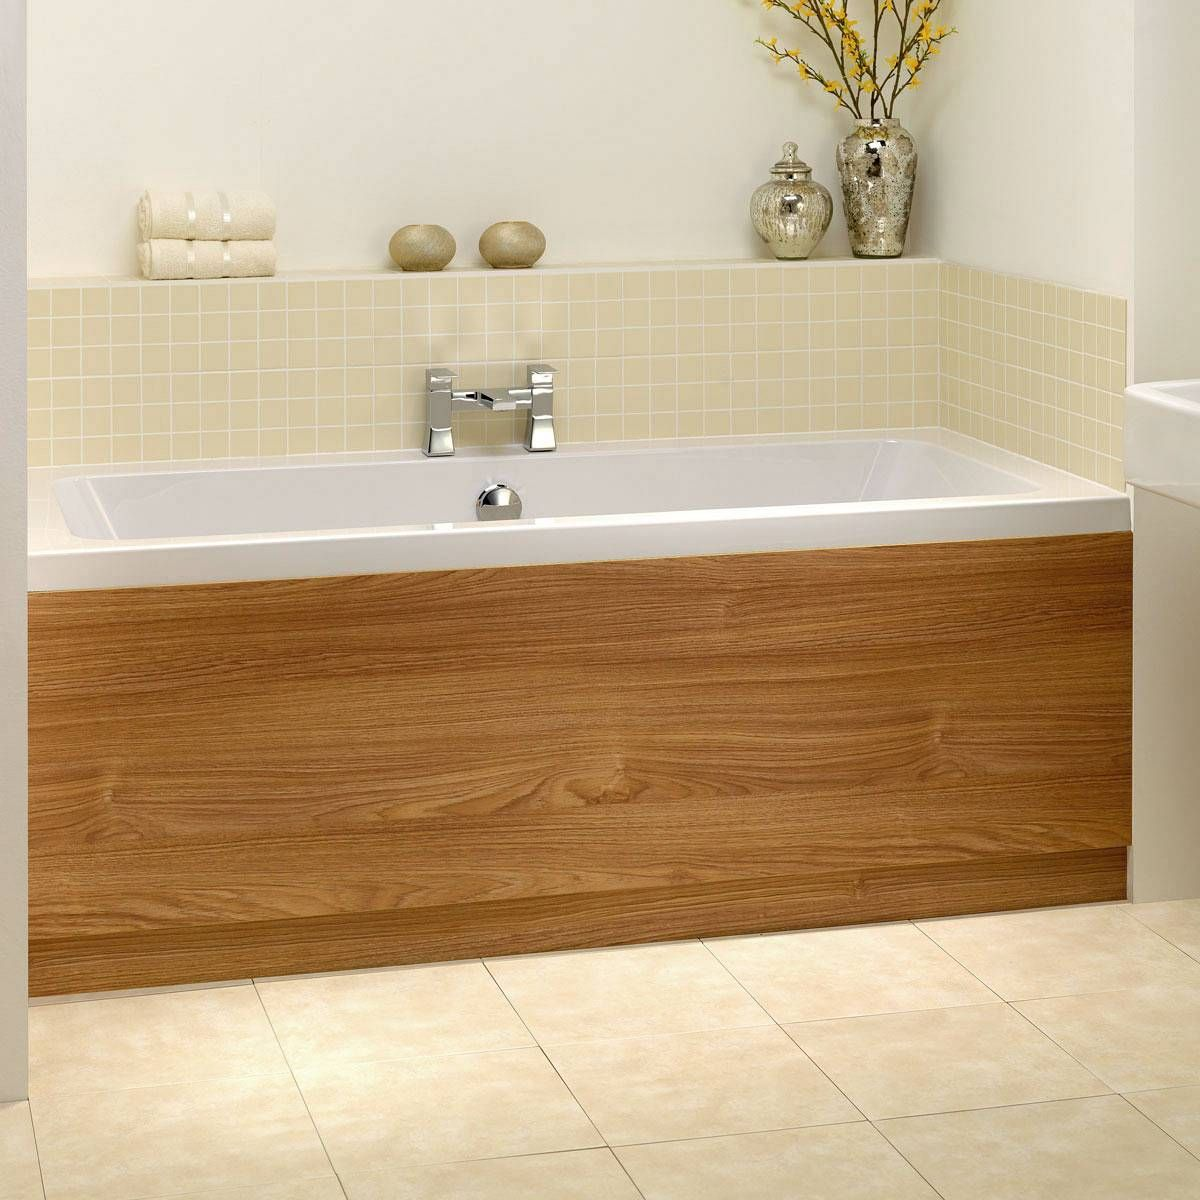 Oak wooden bath panel 1700 victoria 49 or in white Salle de bain baignoire d angle zen